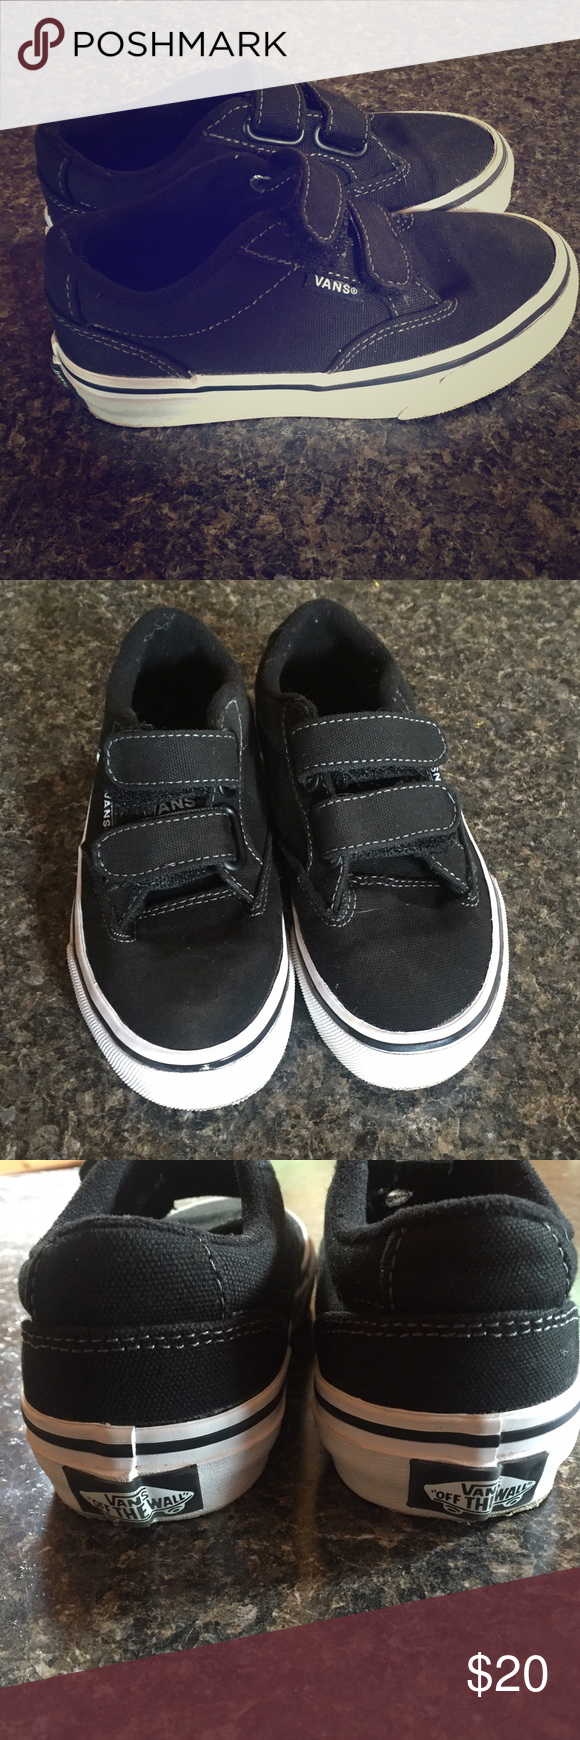 adcc9a4b6a Boys Vans Sneakers Boys Black Vans sneakers with Velcro fasteners